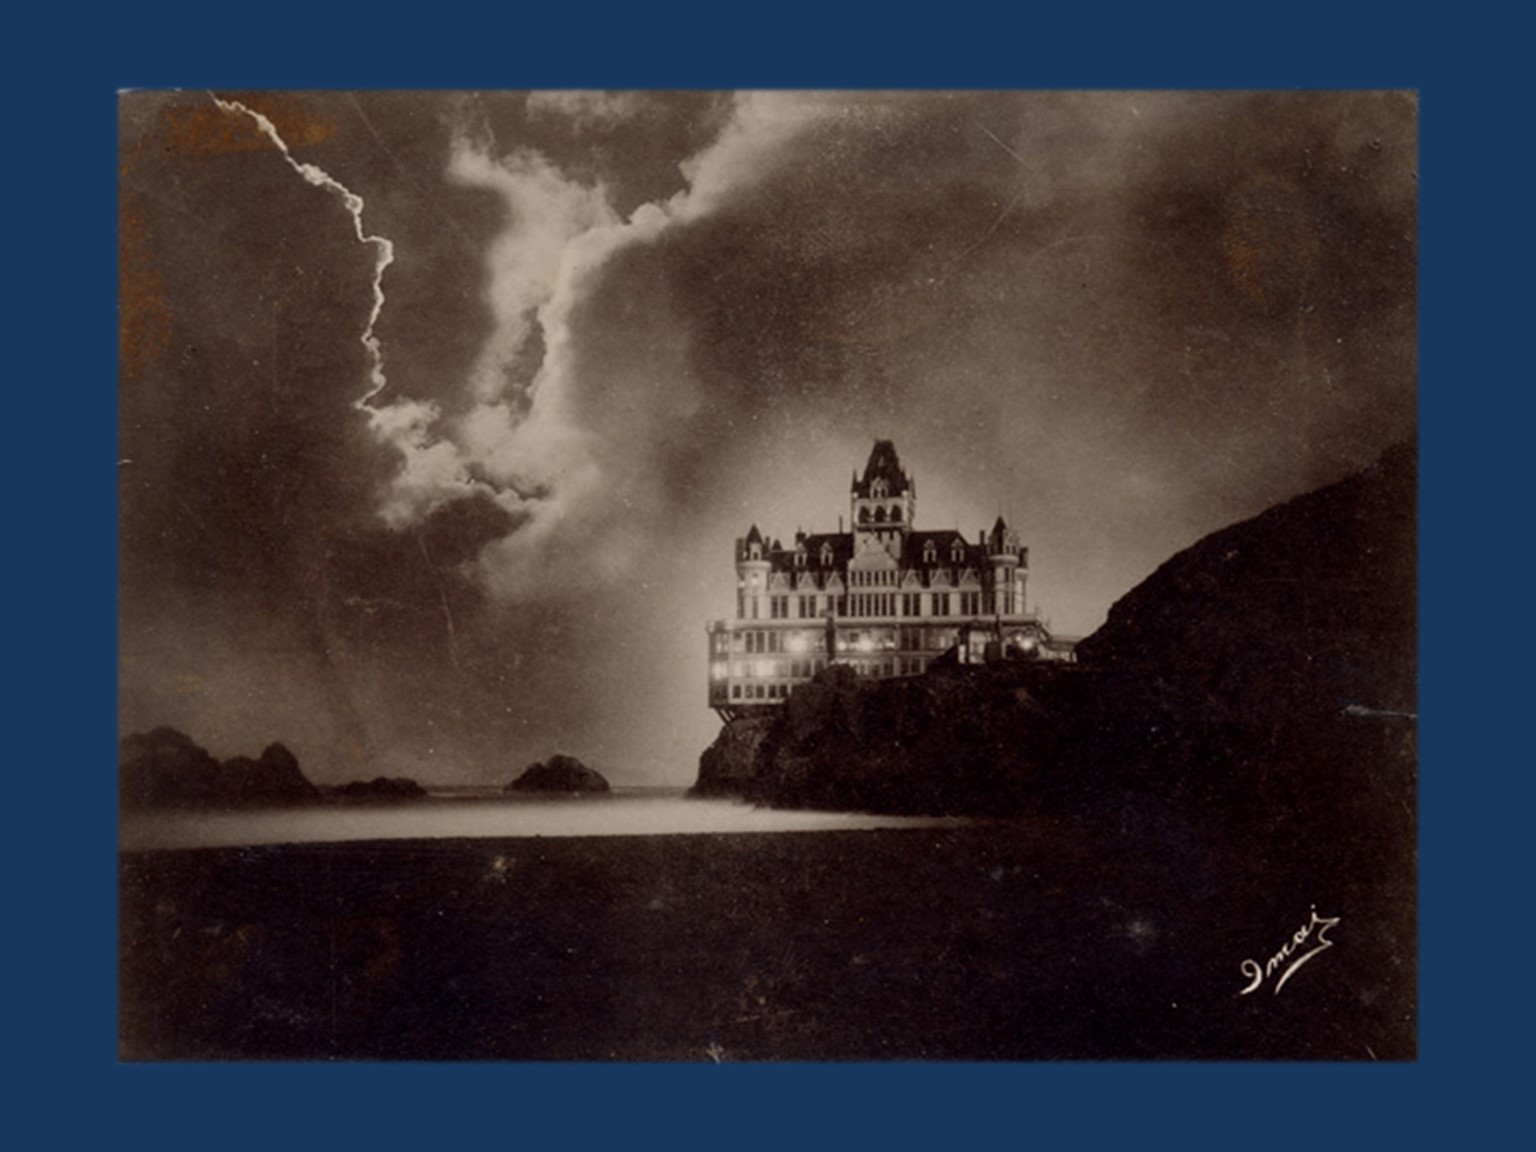 Image of the Cliff House illuminated by lightning, c. 1900. Public domain from https://commons.wikimedia.org/wiki/File:CliffHouseStorm.jpg